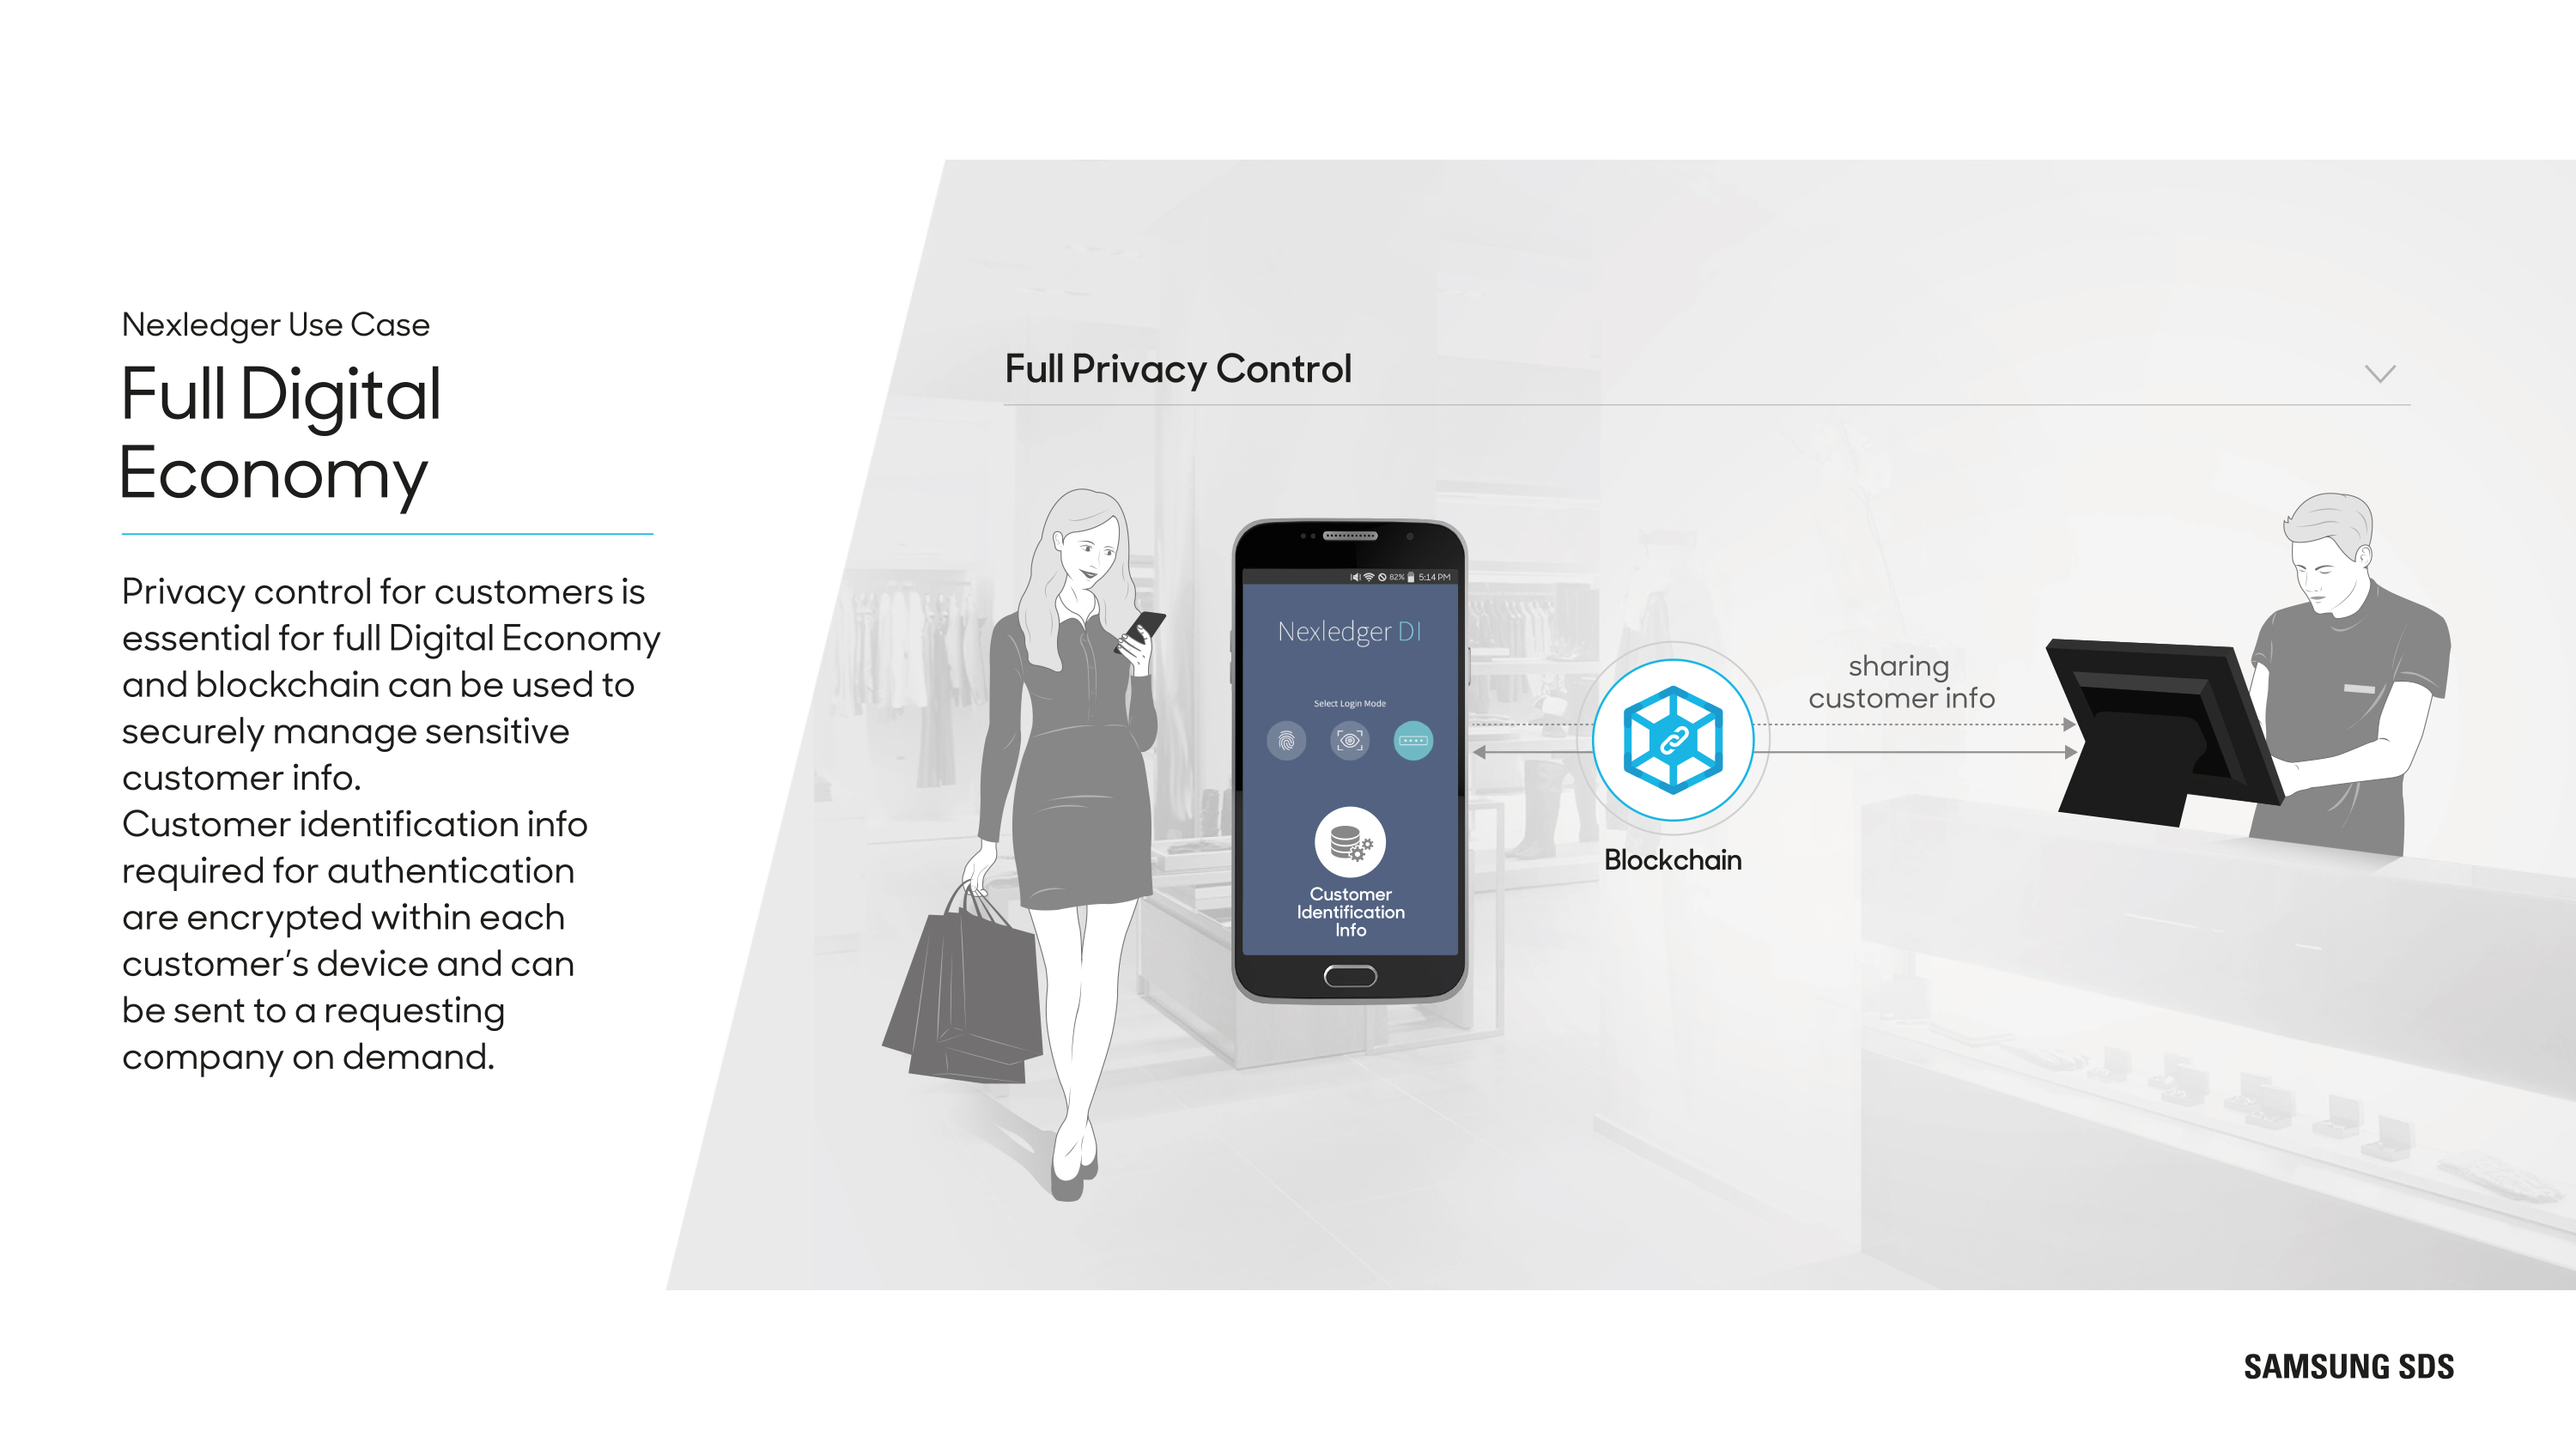 Full Digital Economy